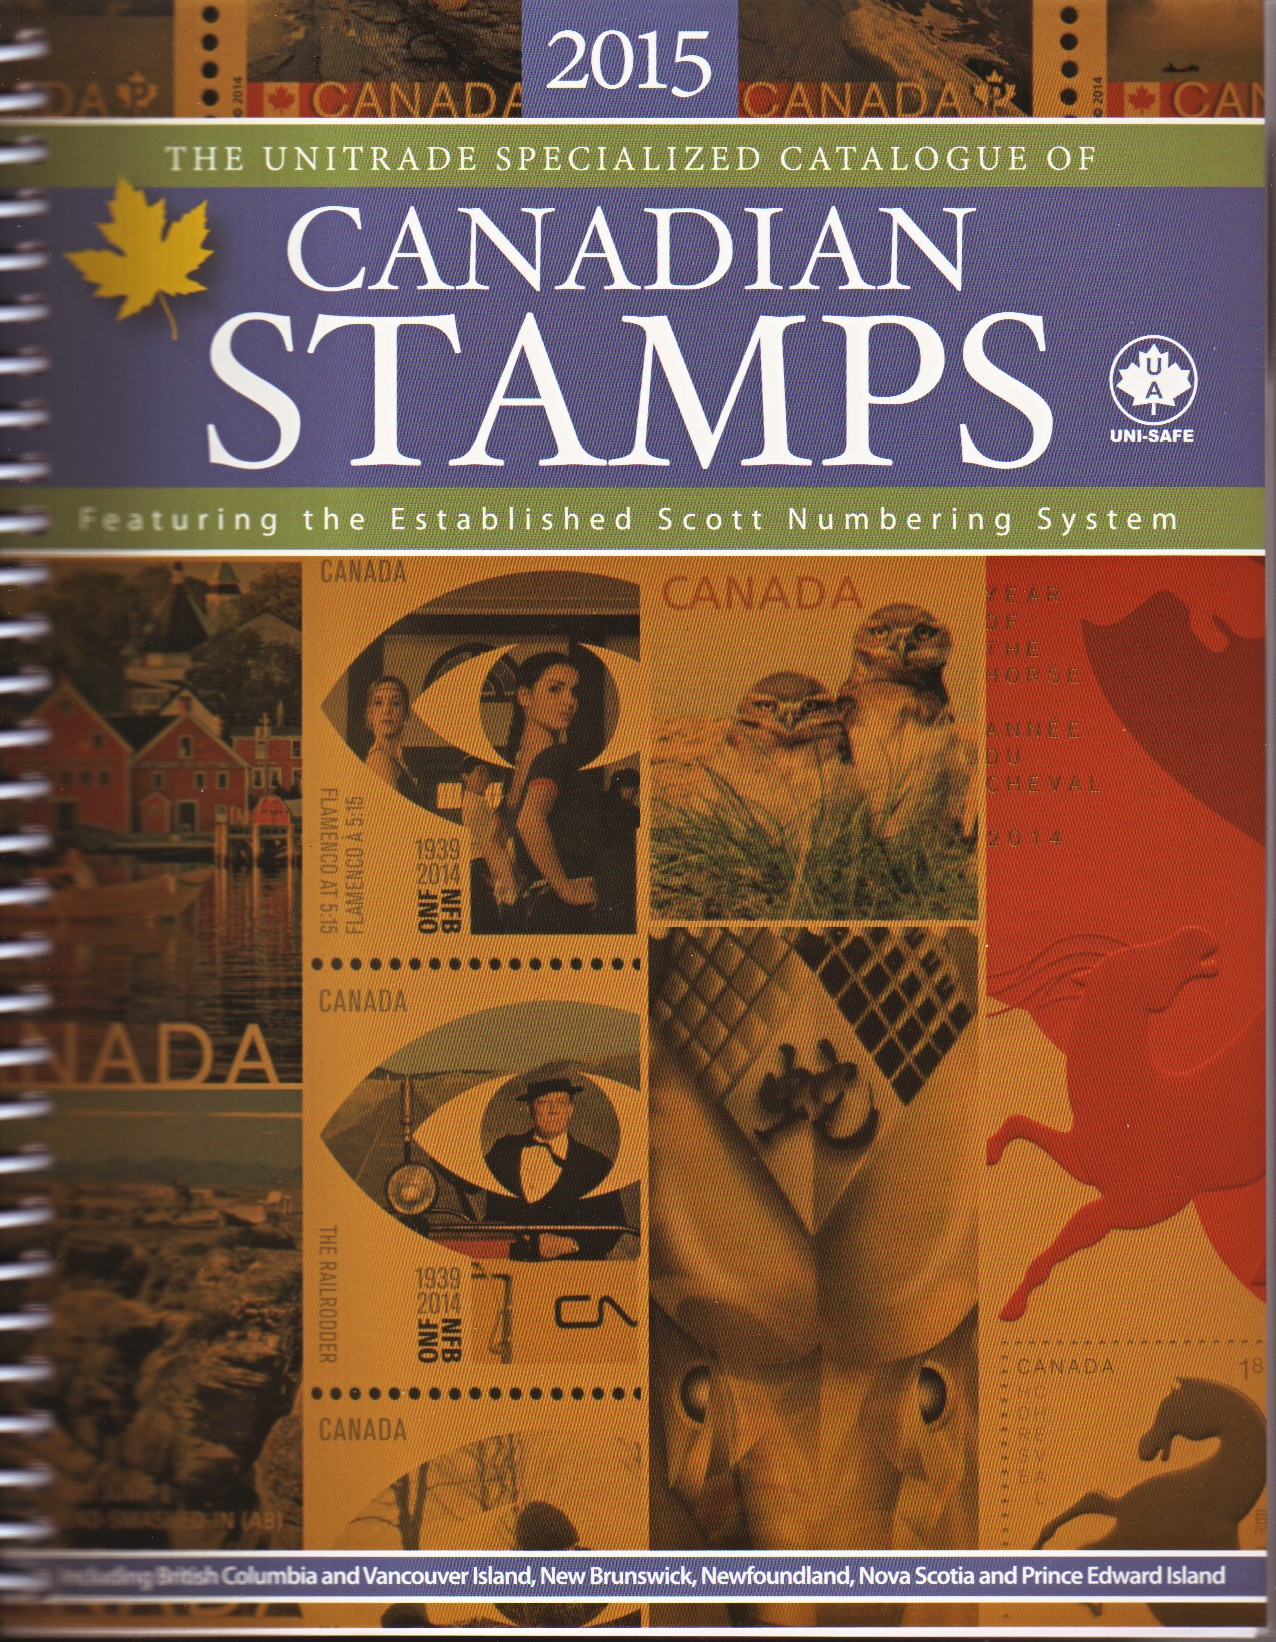 stamp catalogs armstrong 39 s stamps philatelic literature stamp collector reference books. Black Bedroom Furniture Sets. Home Design Ideas